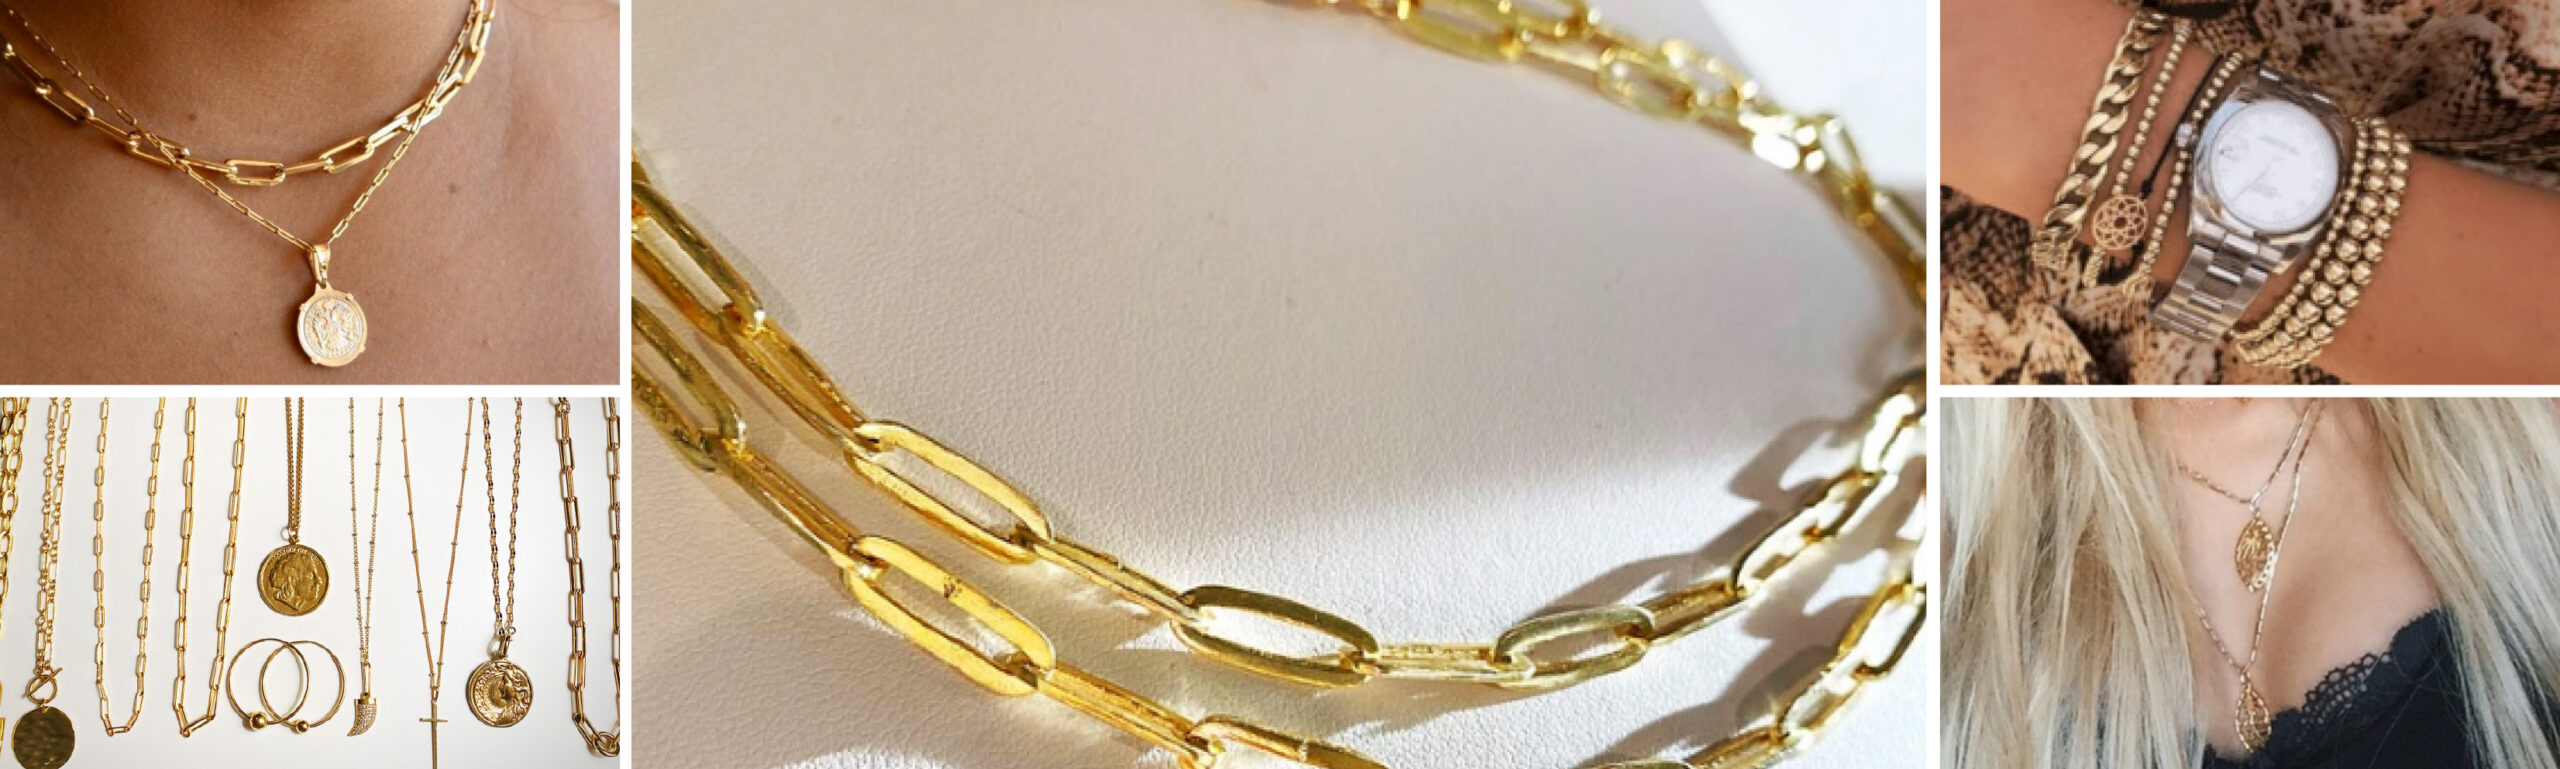 Deb Brewer Jewelry is one of the best!